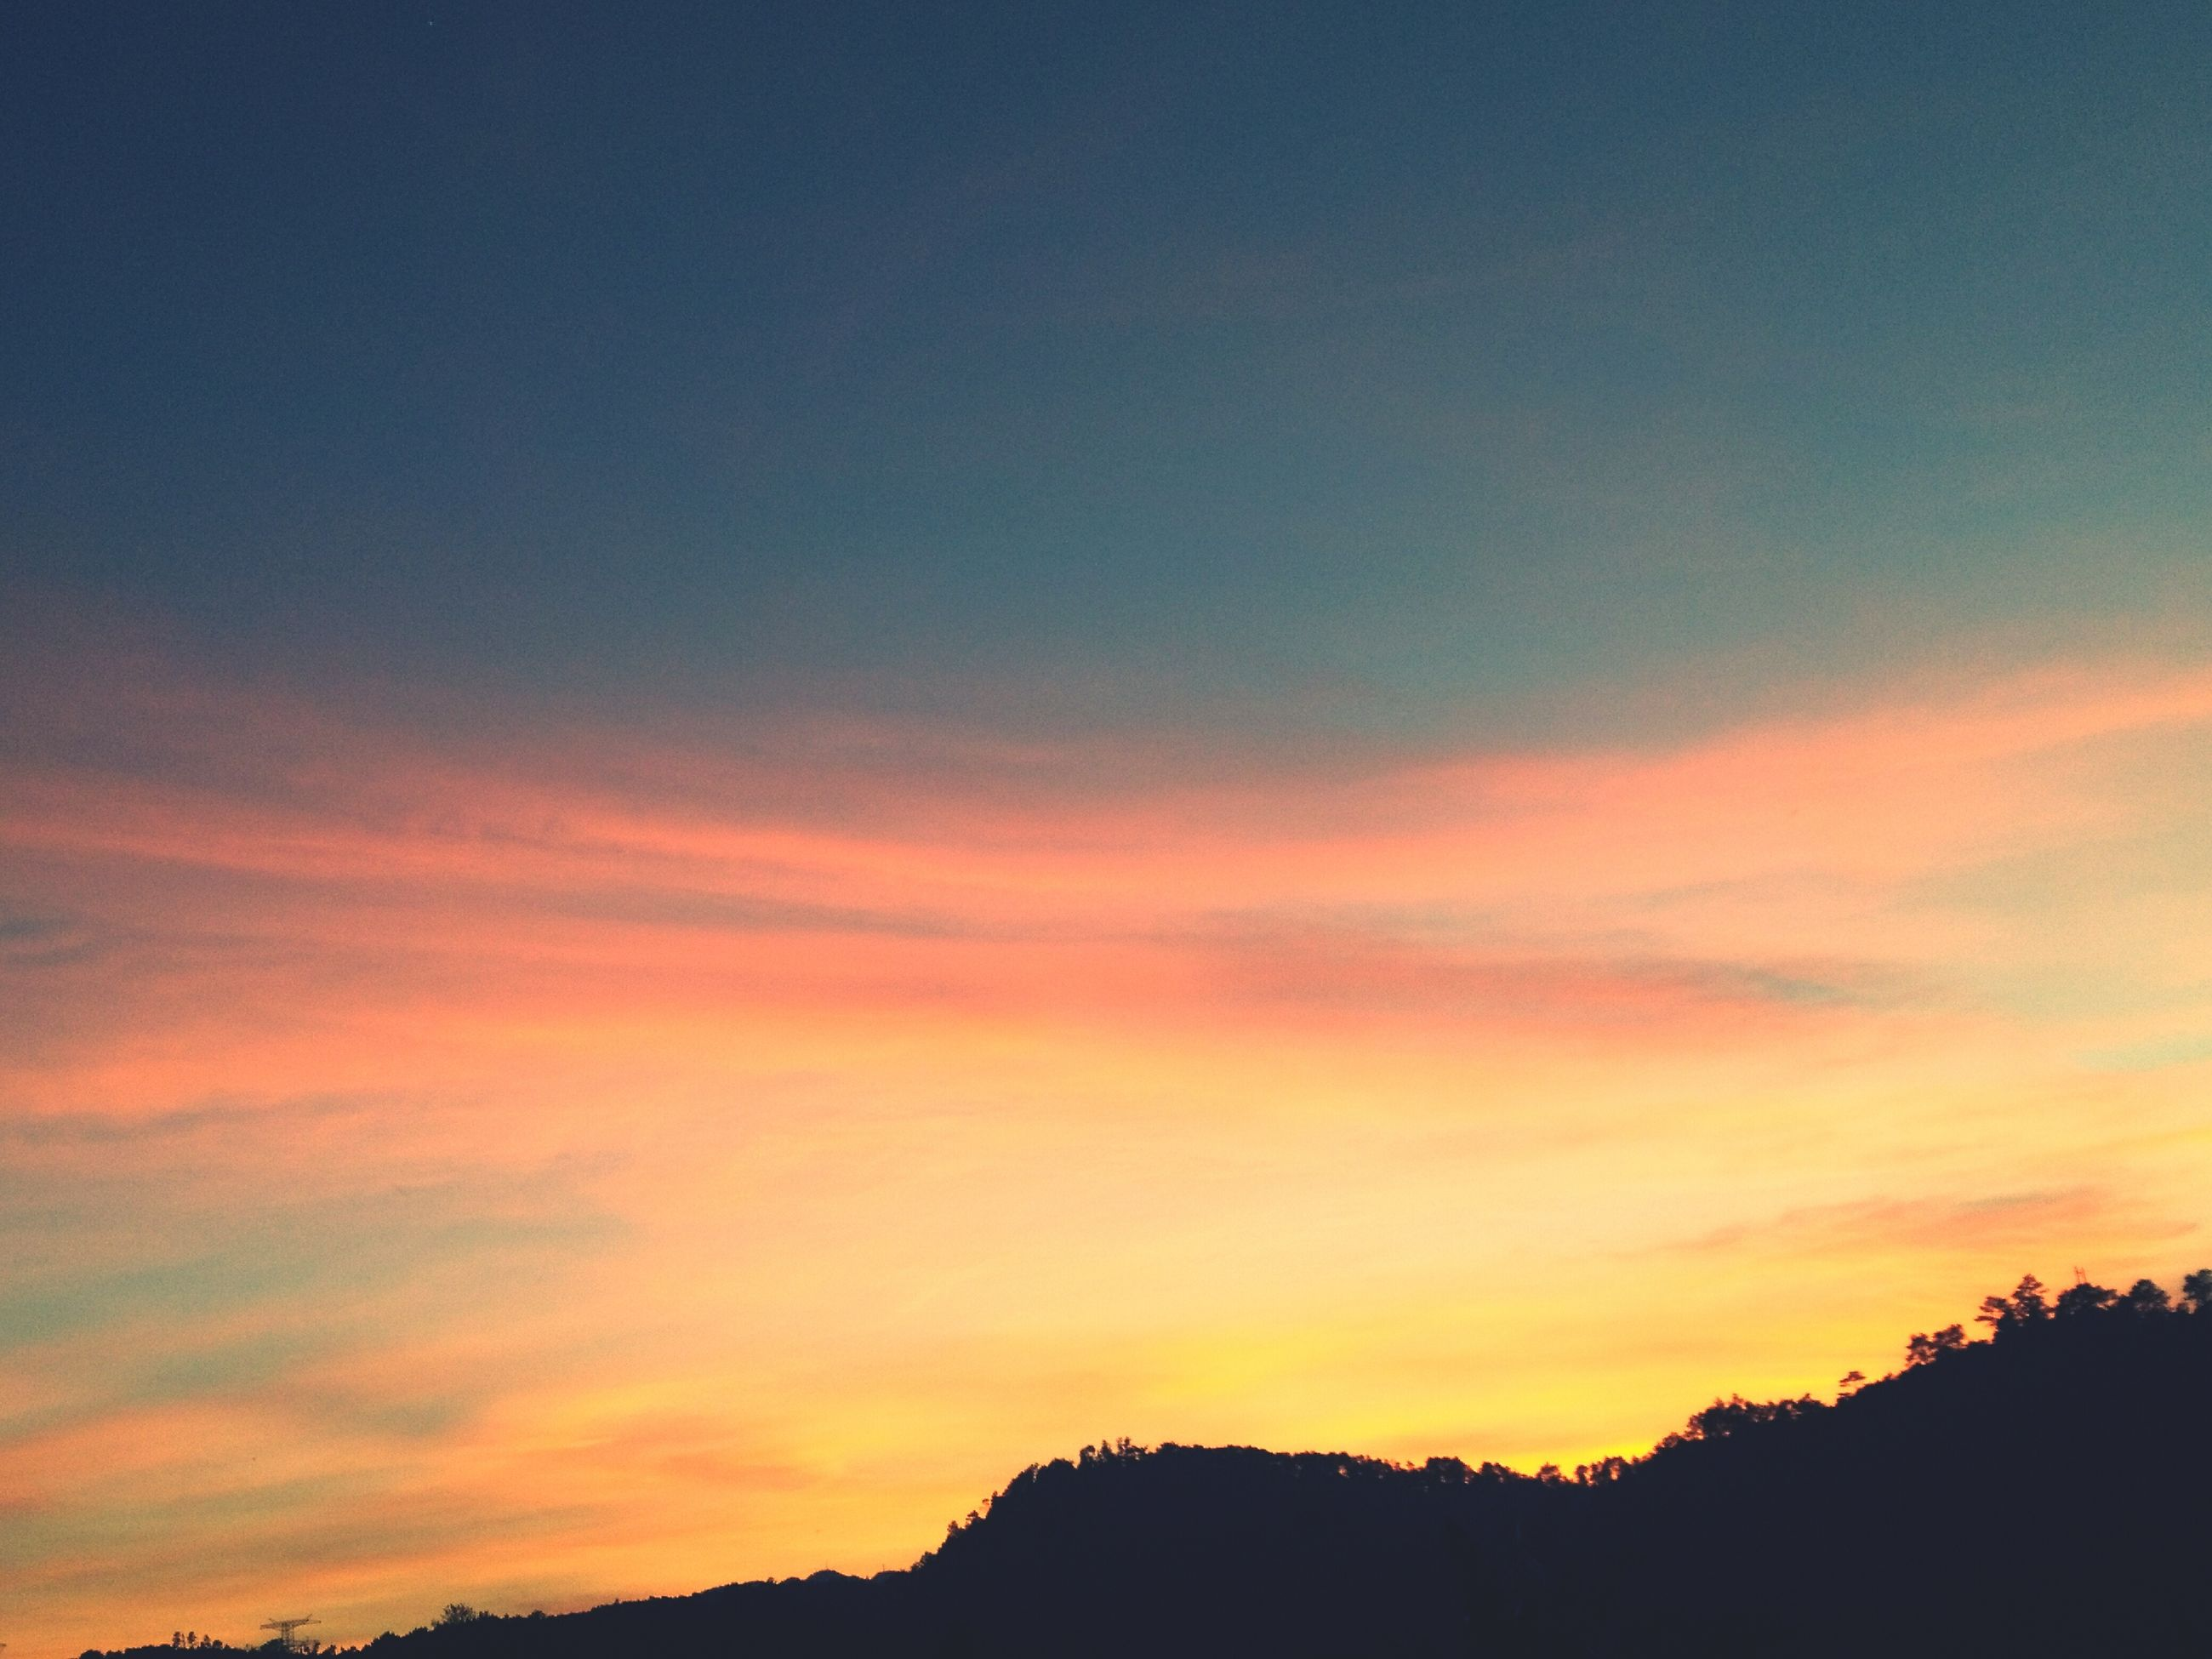 sunset, beauty in nature, orange color, nature, sky, dramatic sky, tranquility, scenics, tranquil scene, silhouette, no people, outdoors, astronomy